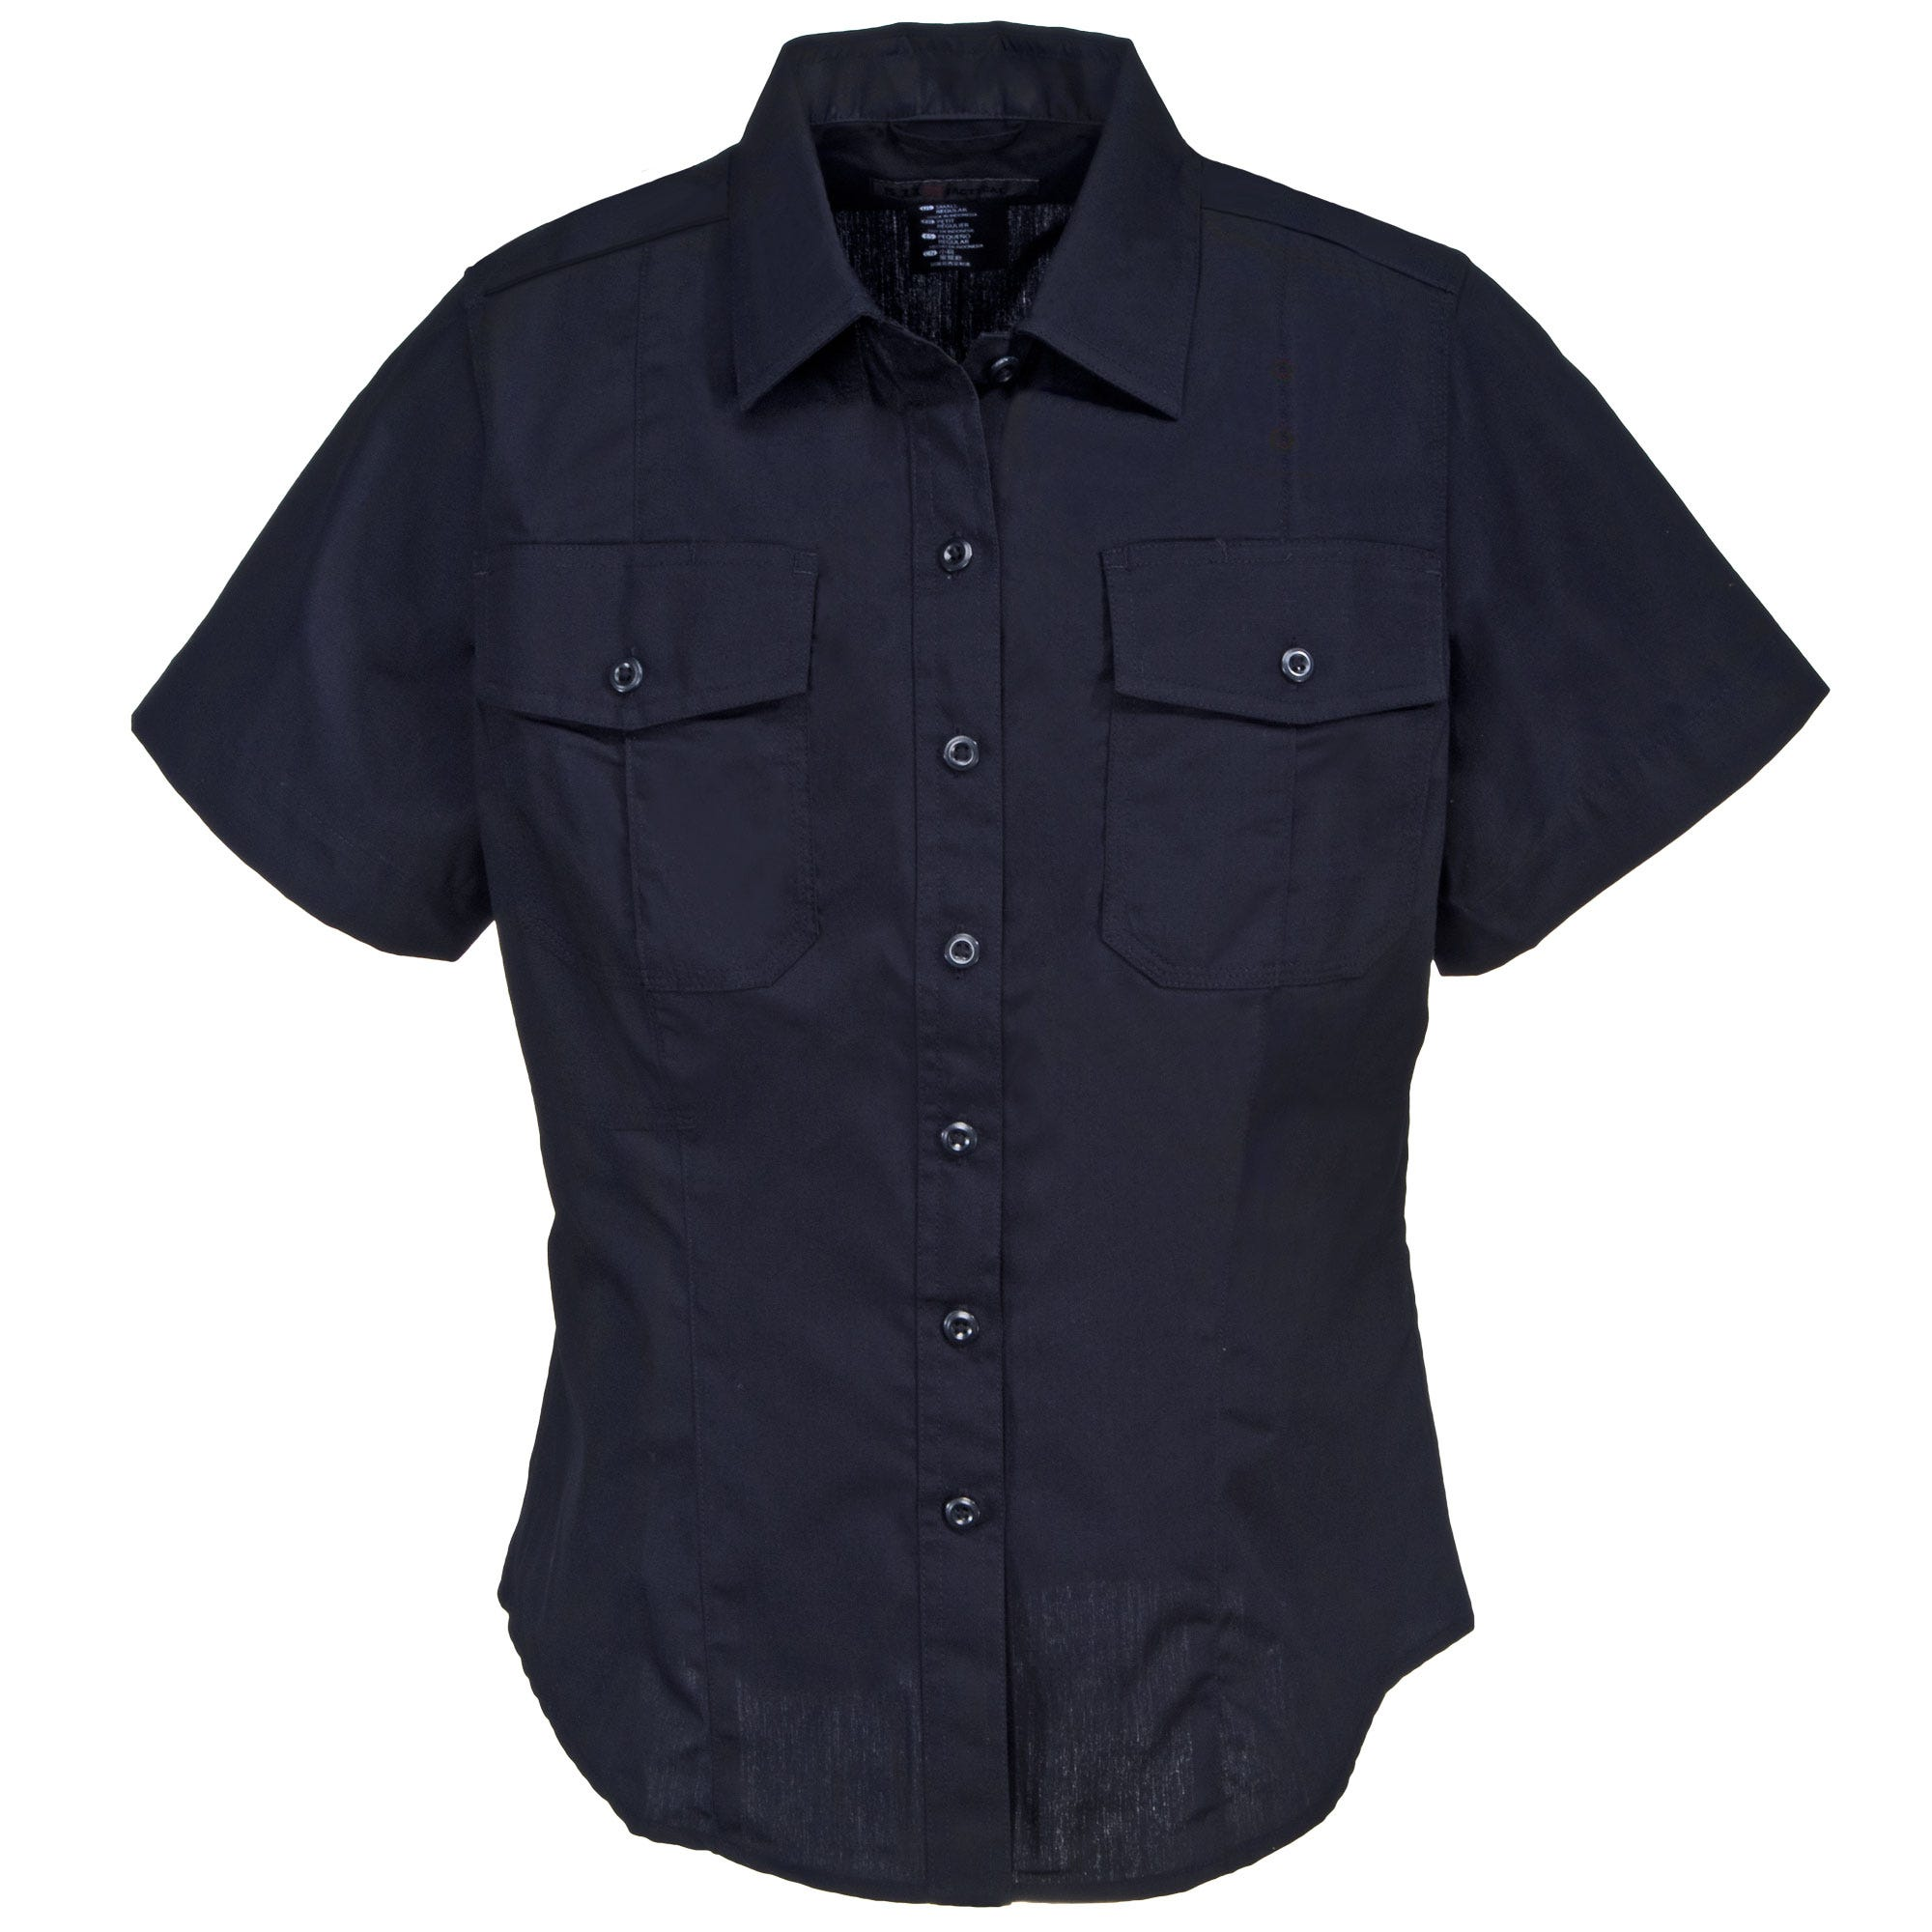 5.11 Tactical Women's 61016 750 Midnight Navy PDU Class A Short Sleeve Stryke Shirt